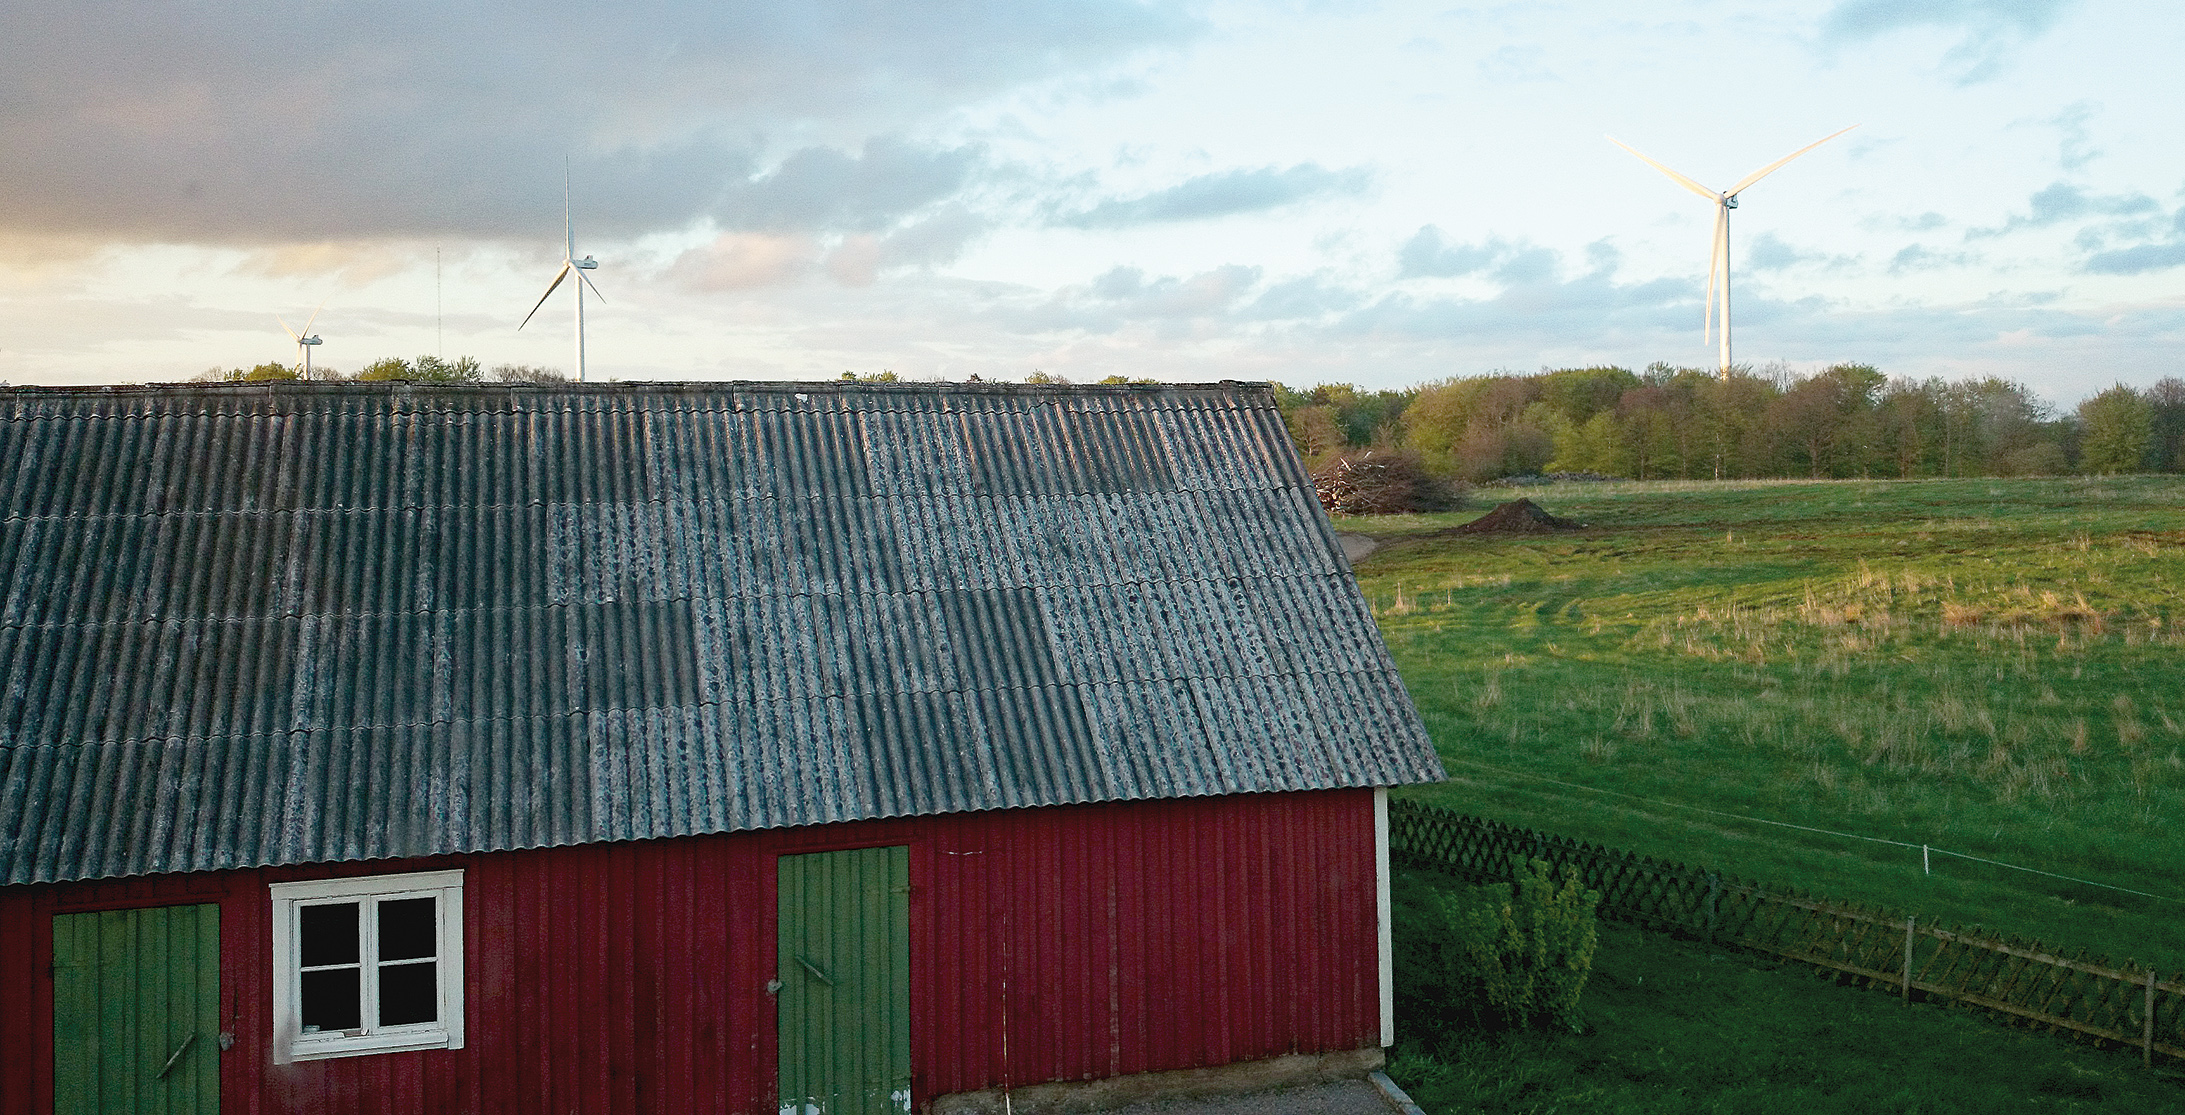 Ljud från vindkraftverk. WiTNES – Wind Turbine Noise Effects on Sleep